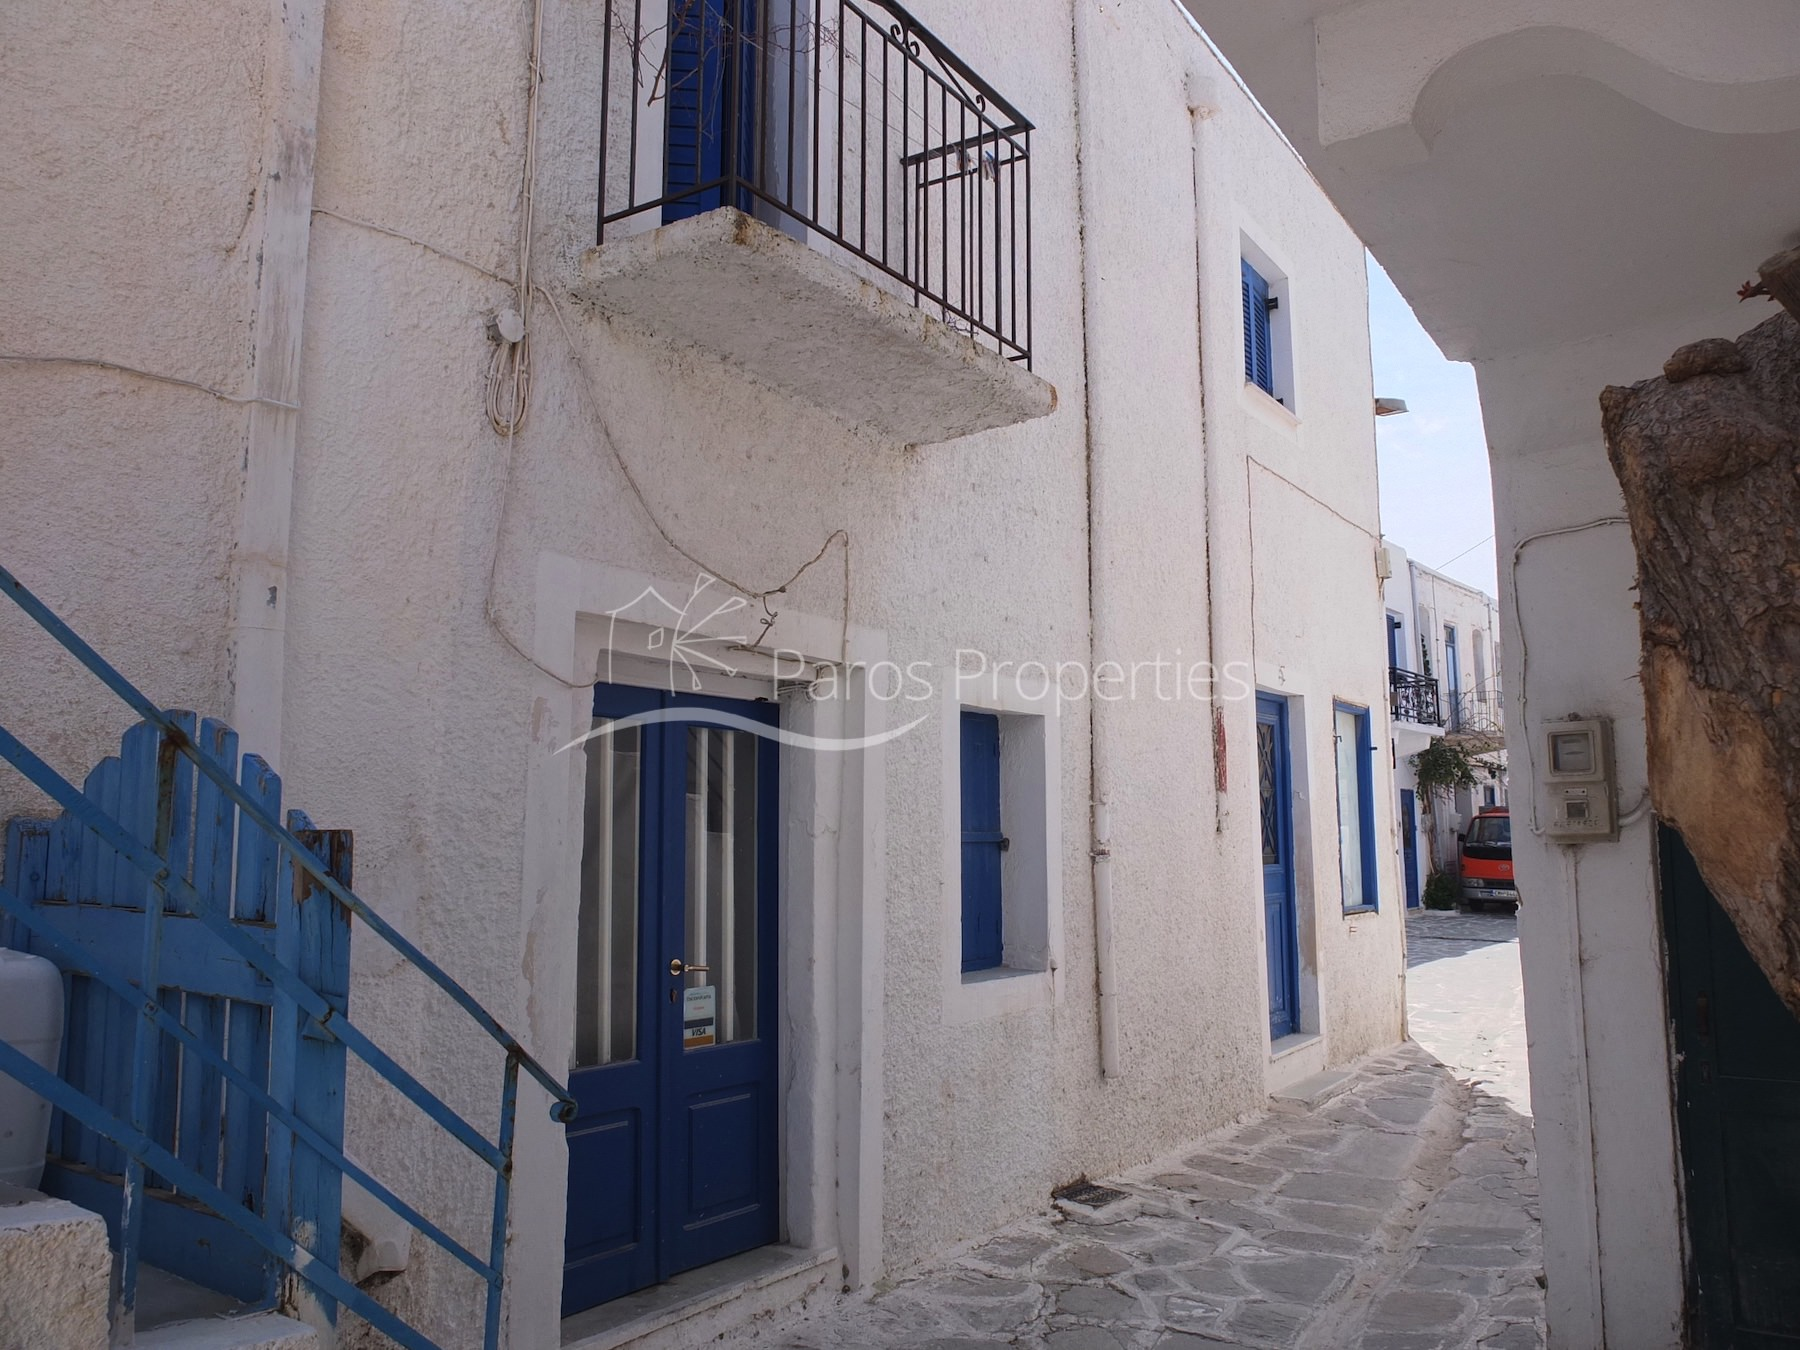 Two storey building in the heart of the traditional